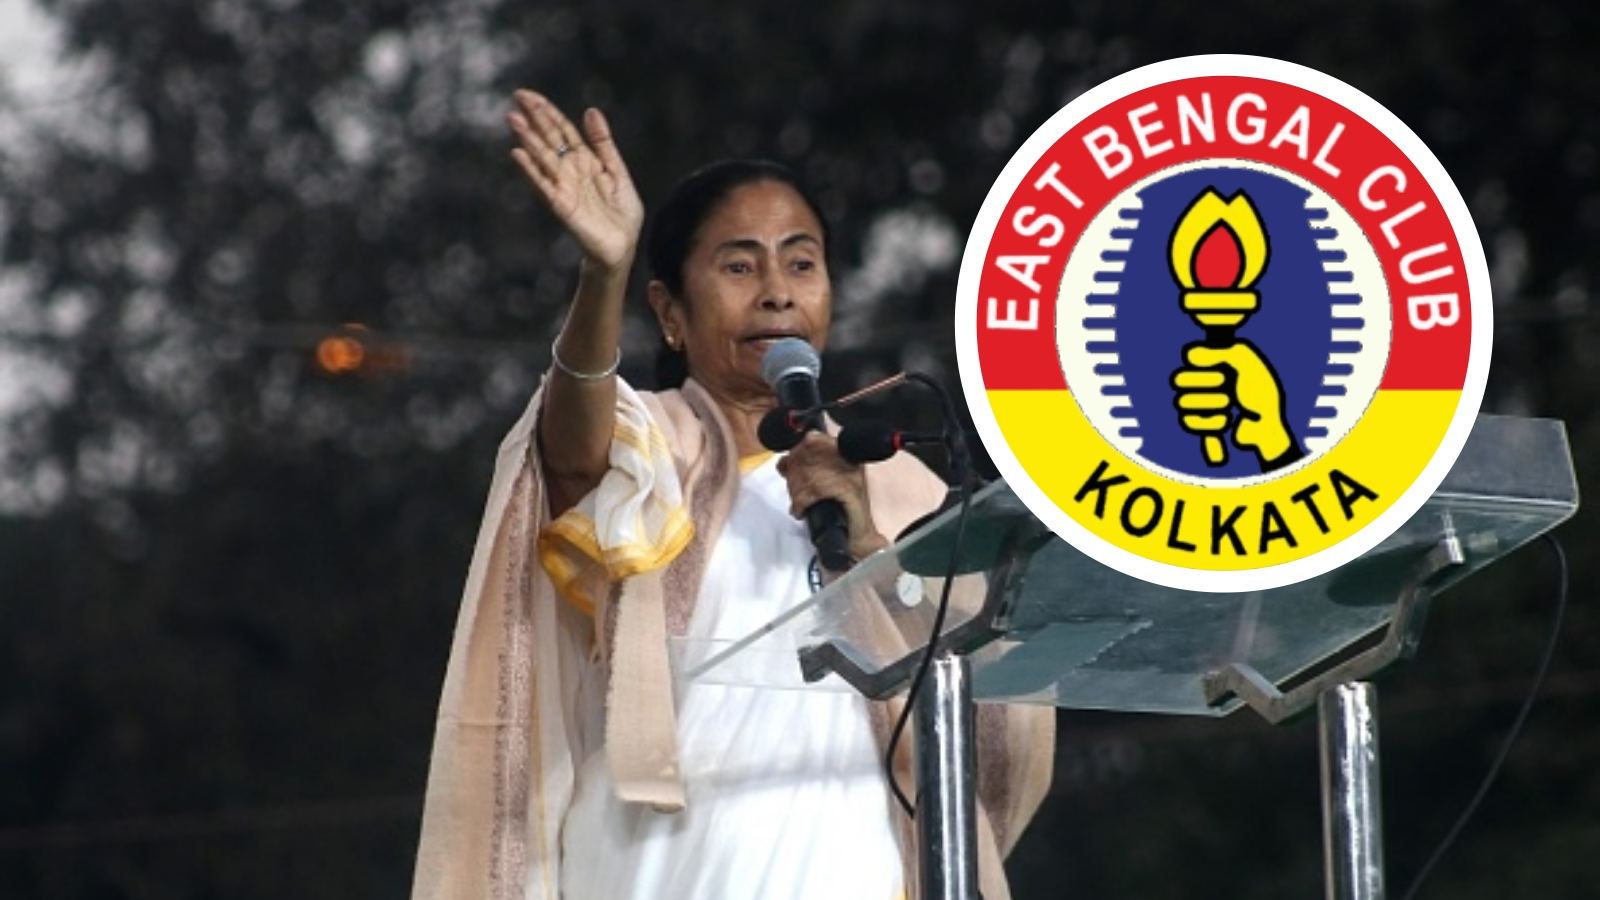 'East Bengal will play ISL' – West Bengal CM Mamata Banerjee assures fans